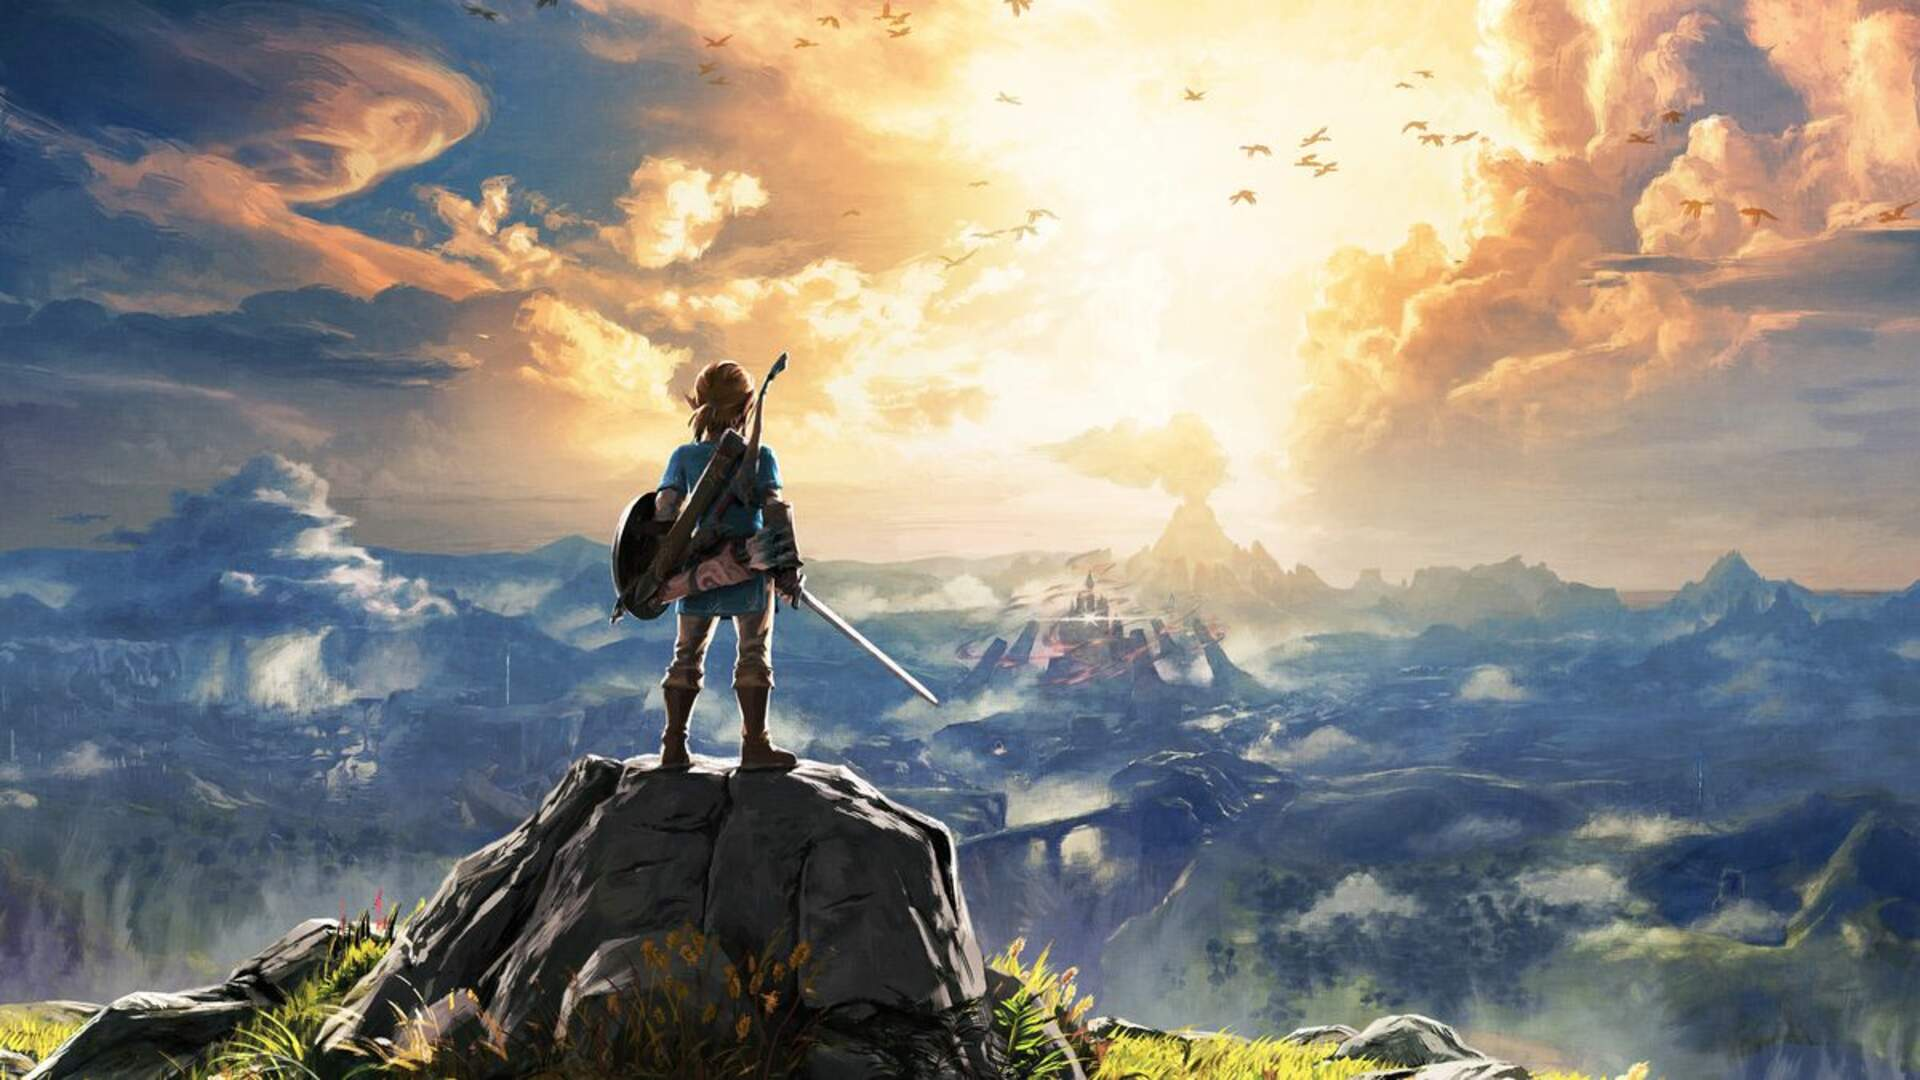 Monolith Soft, Which Worked on Breath of the Wild, is Hiring for a New Legend of Zelda Game